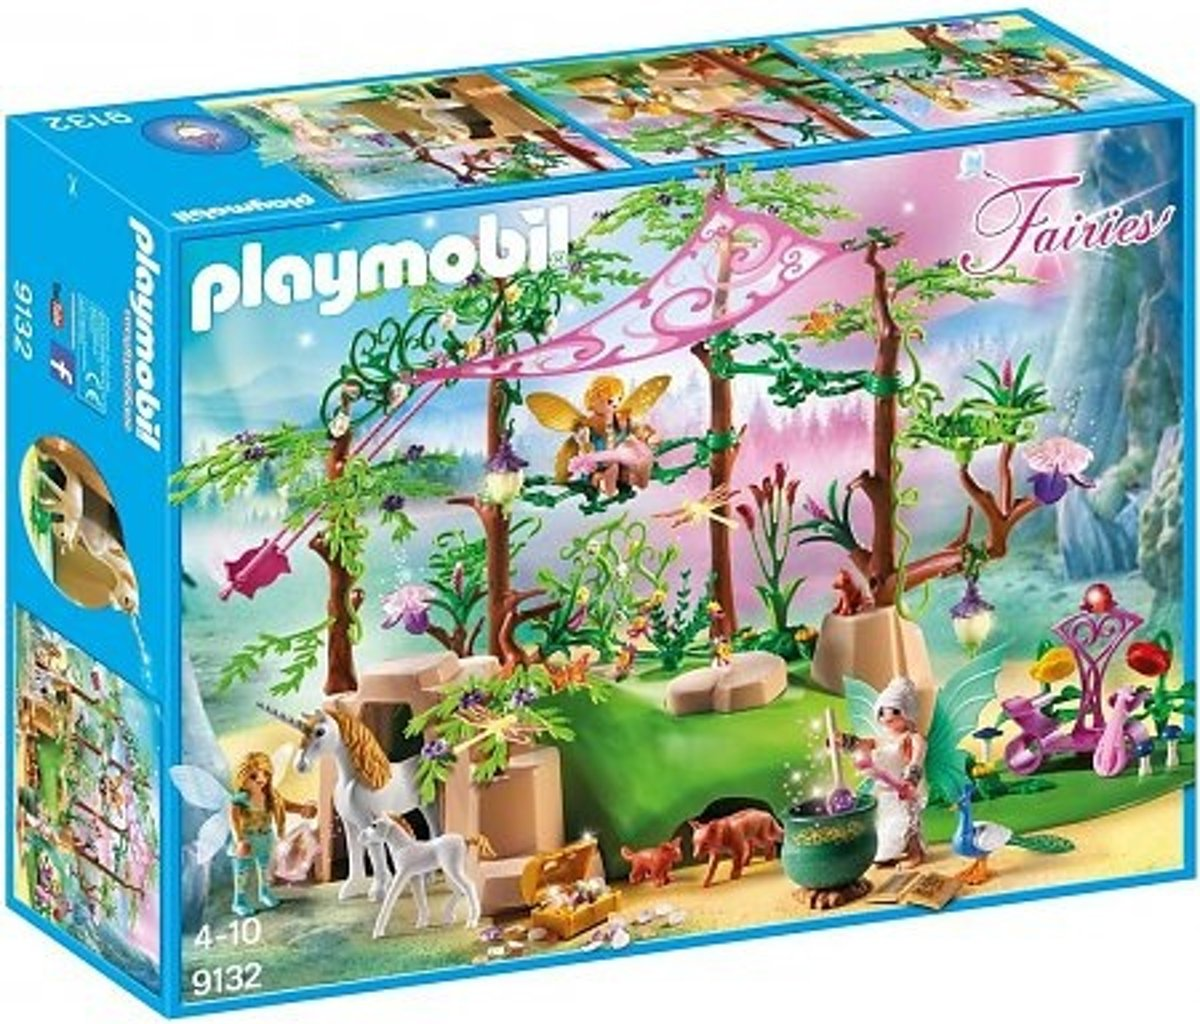 Playmobil Fairies: Magische Feeëntuin (9132)